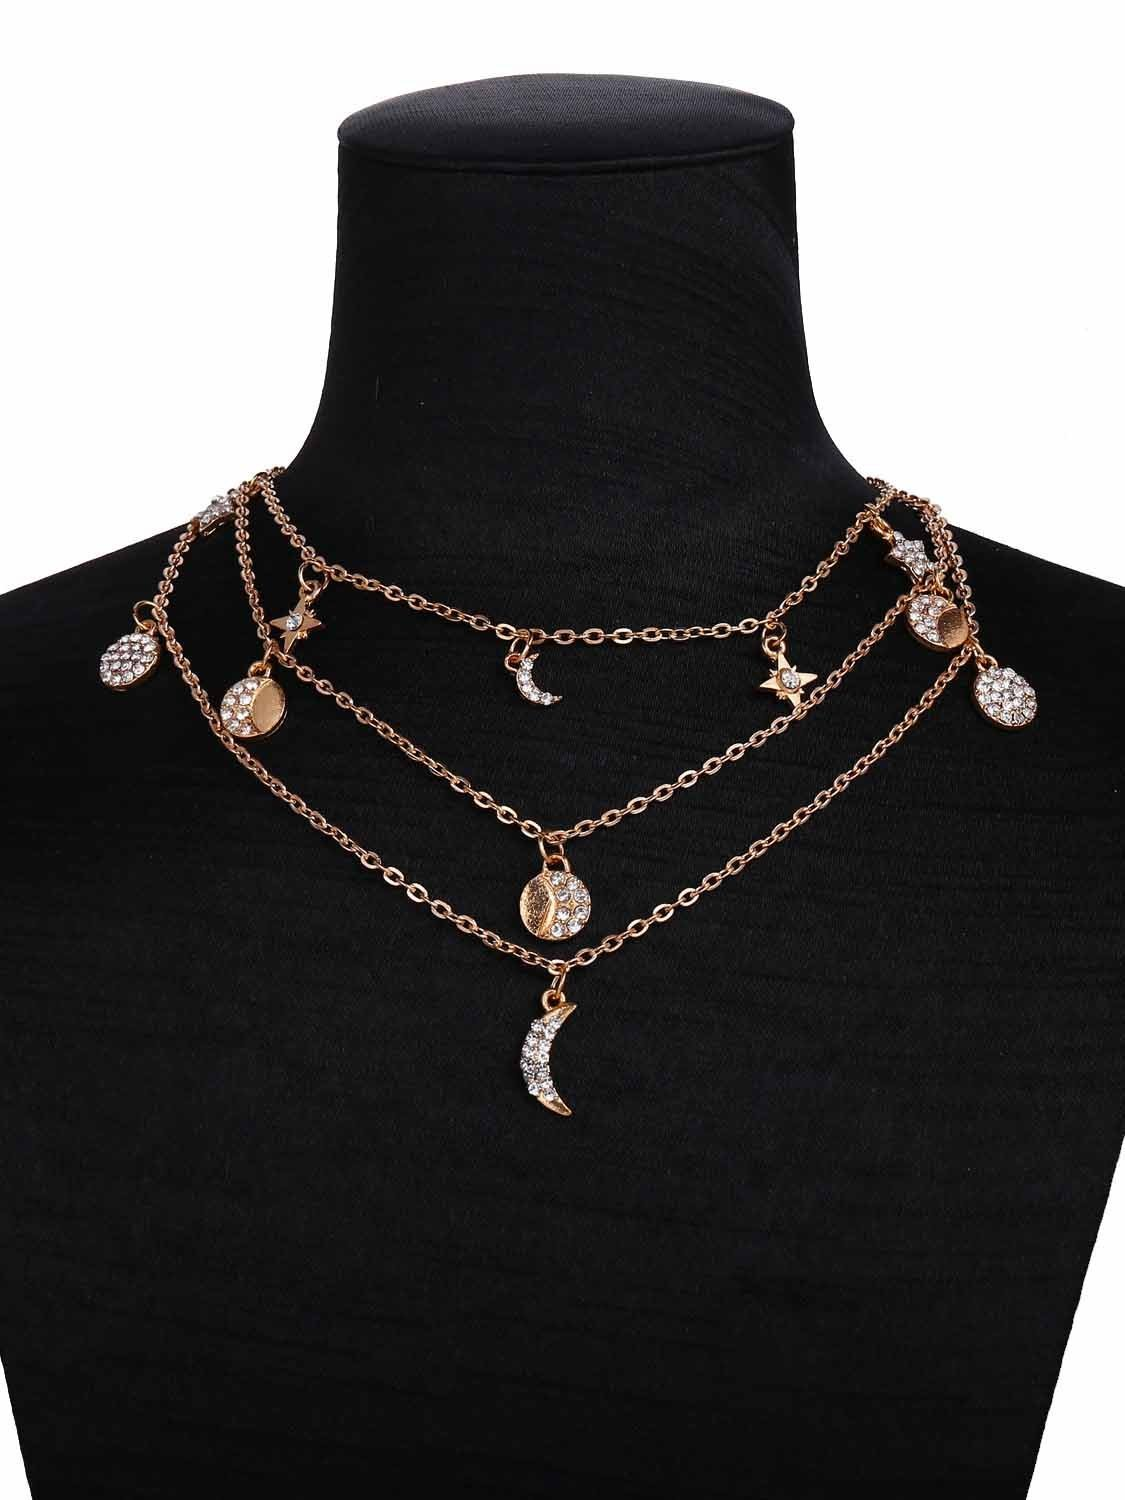 Retro Crystal Pendant Chain Necklaces